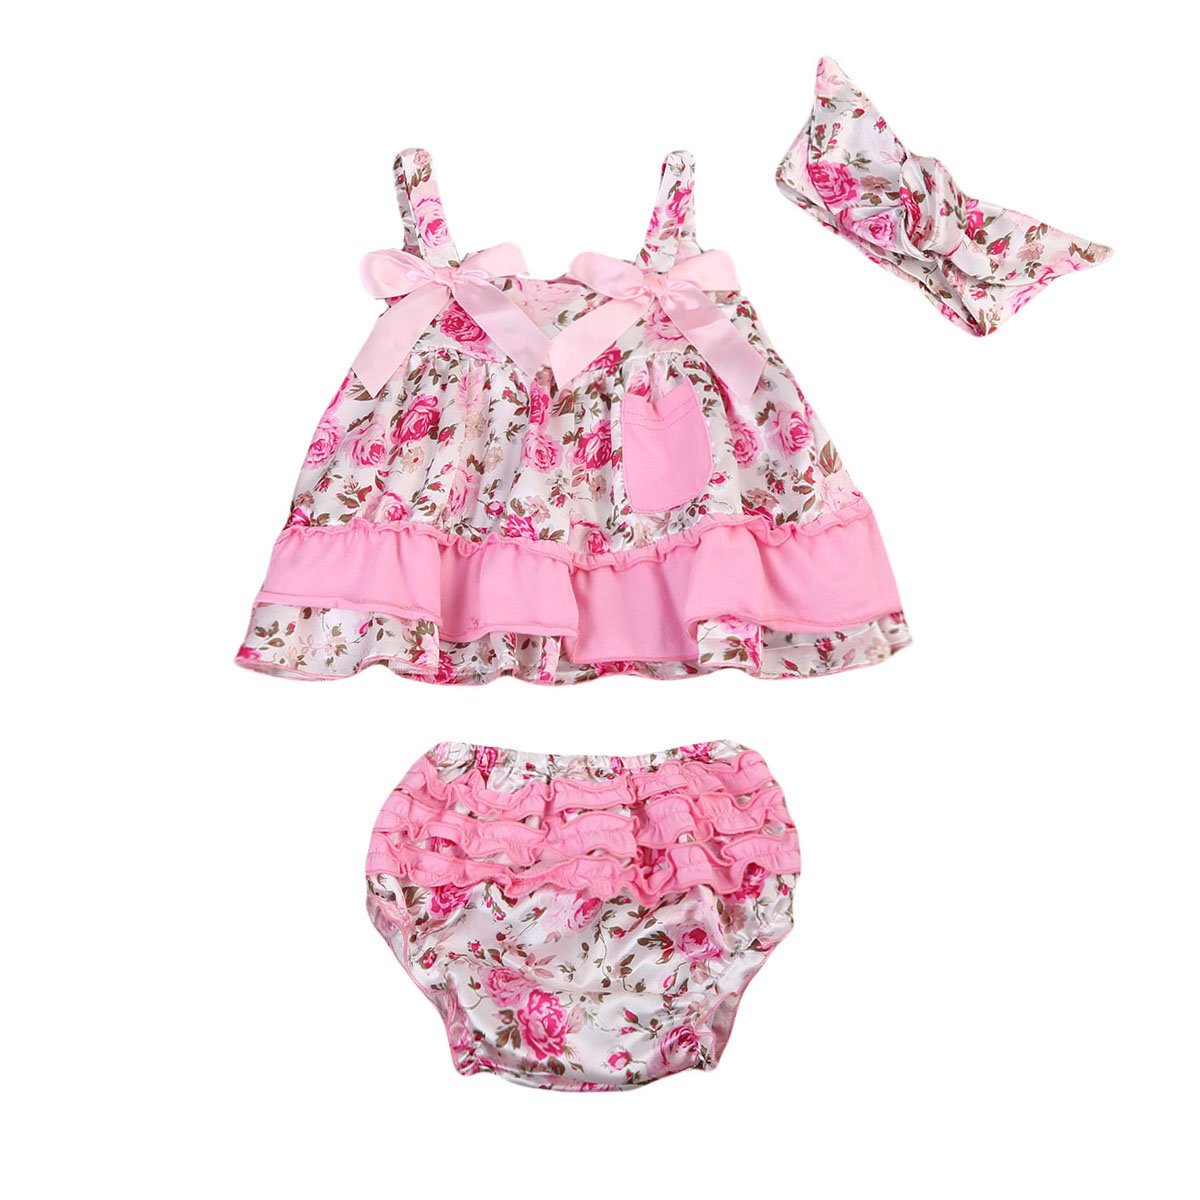 Infant Baby Girls Clothing Set Floral Ruffle Girl Sleeveless Pink Sleeveless Tops Pants Shorts Headband Outfit Clothes 3PCS infant tops pants love pattern headband baby girl outfit set clothing 3pcs kid children baby girls clothes long sleeve